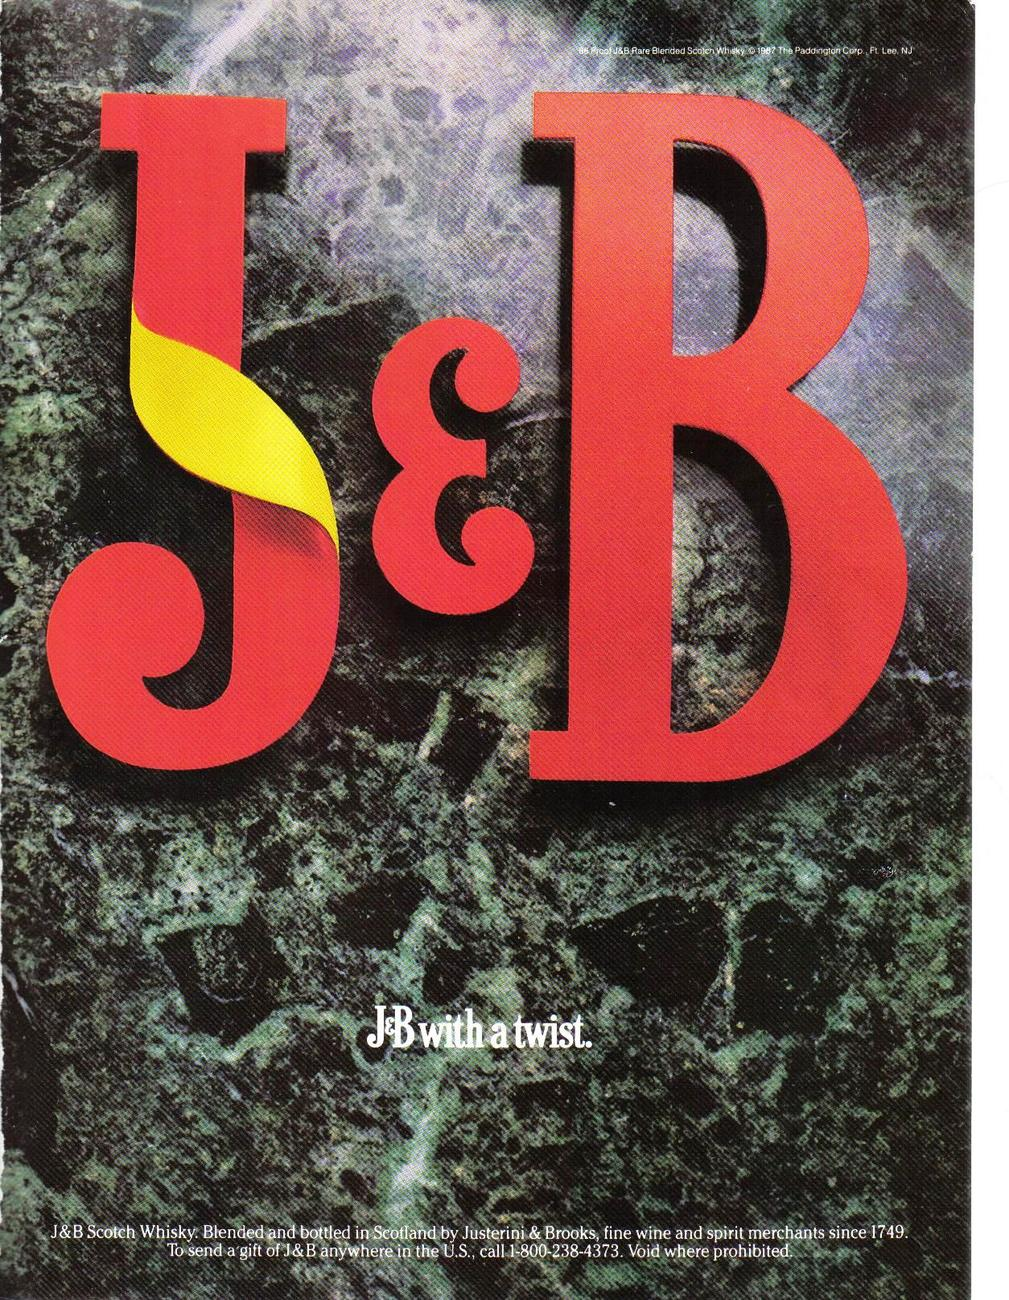 1987 J & B Blended Scotch Whisky Full Page Color Print Ad Original Near Mint